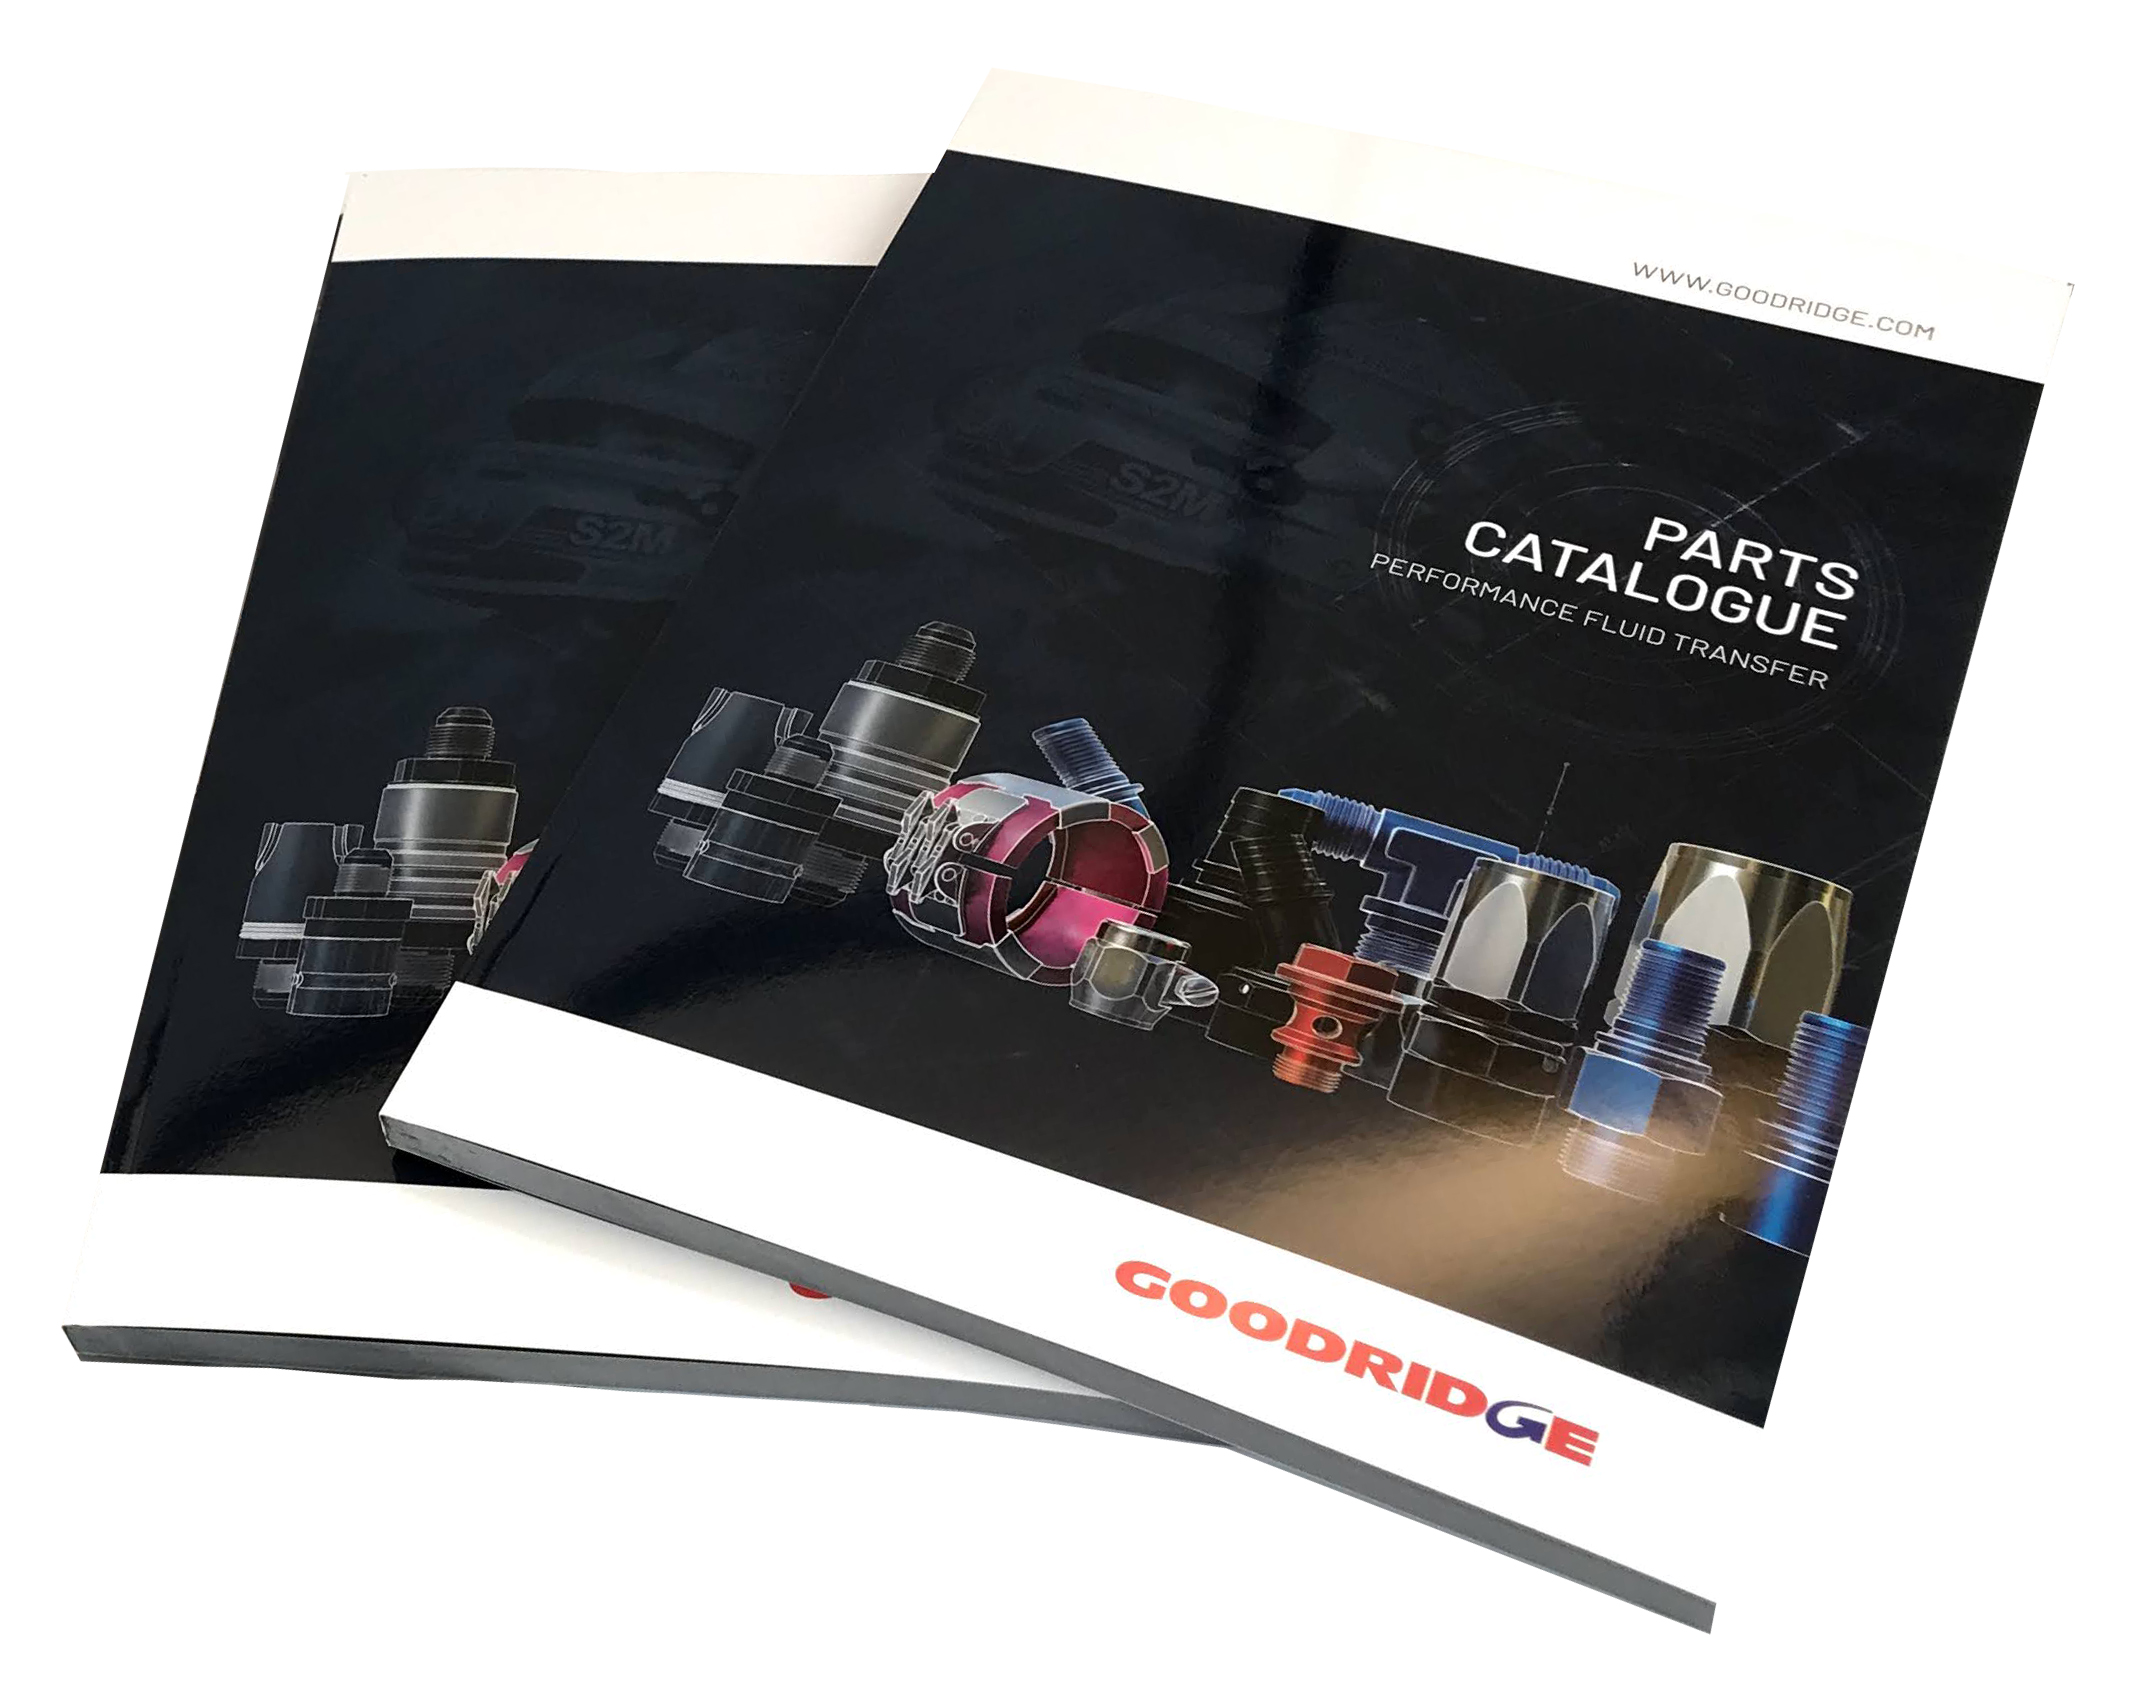 NEW Goodridge Performance & Motorsport Parts Catalogue